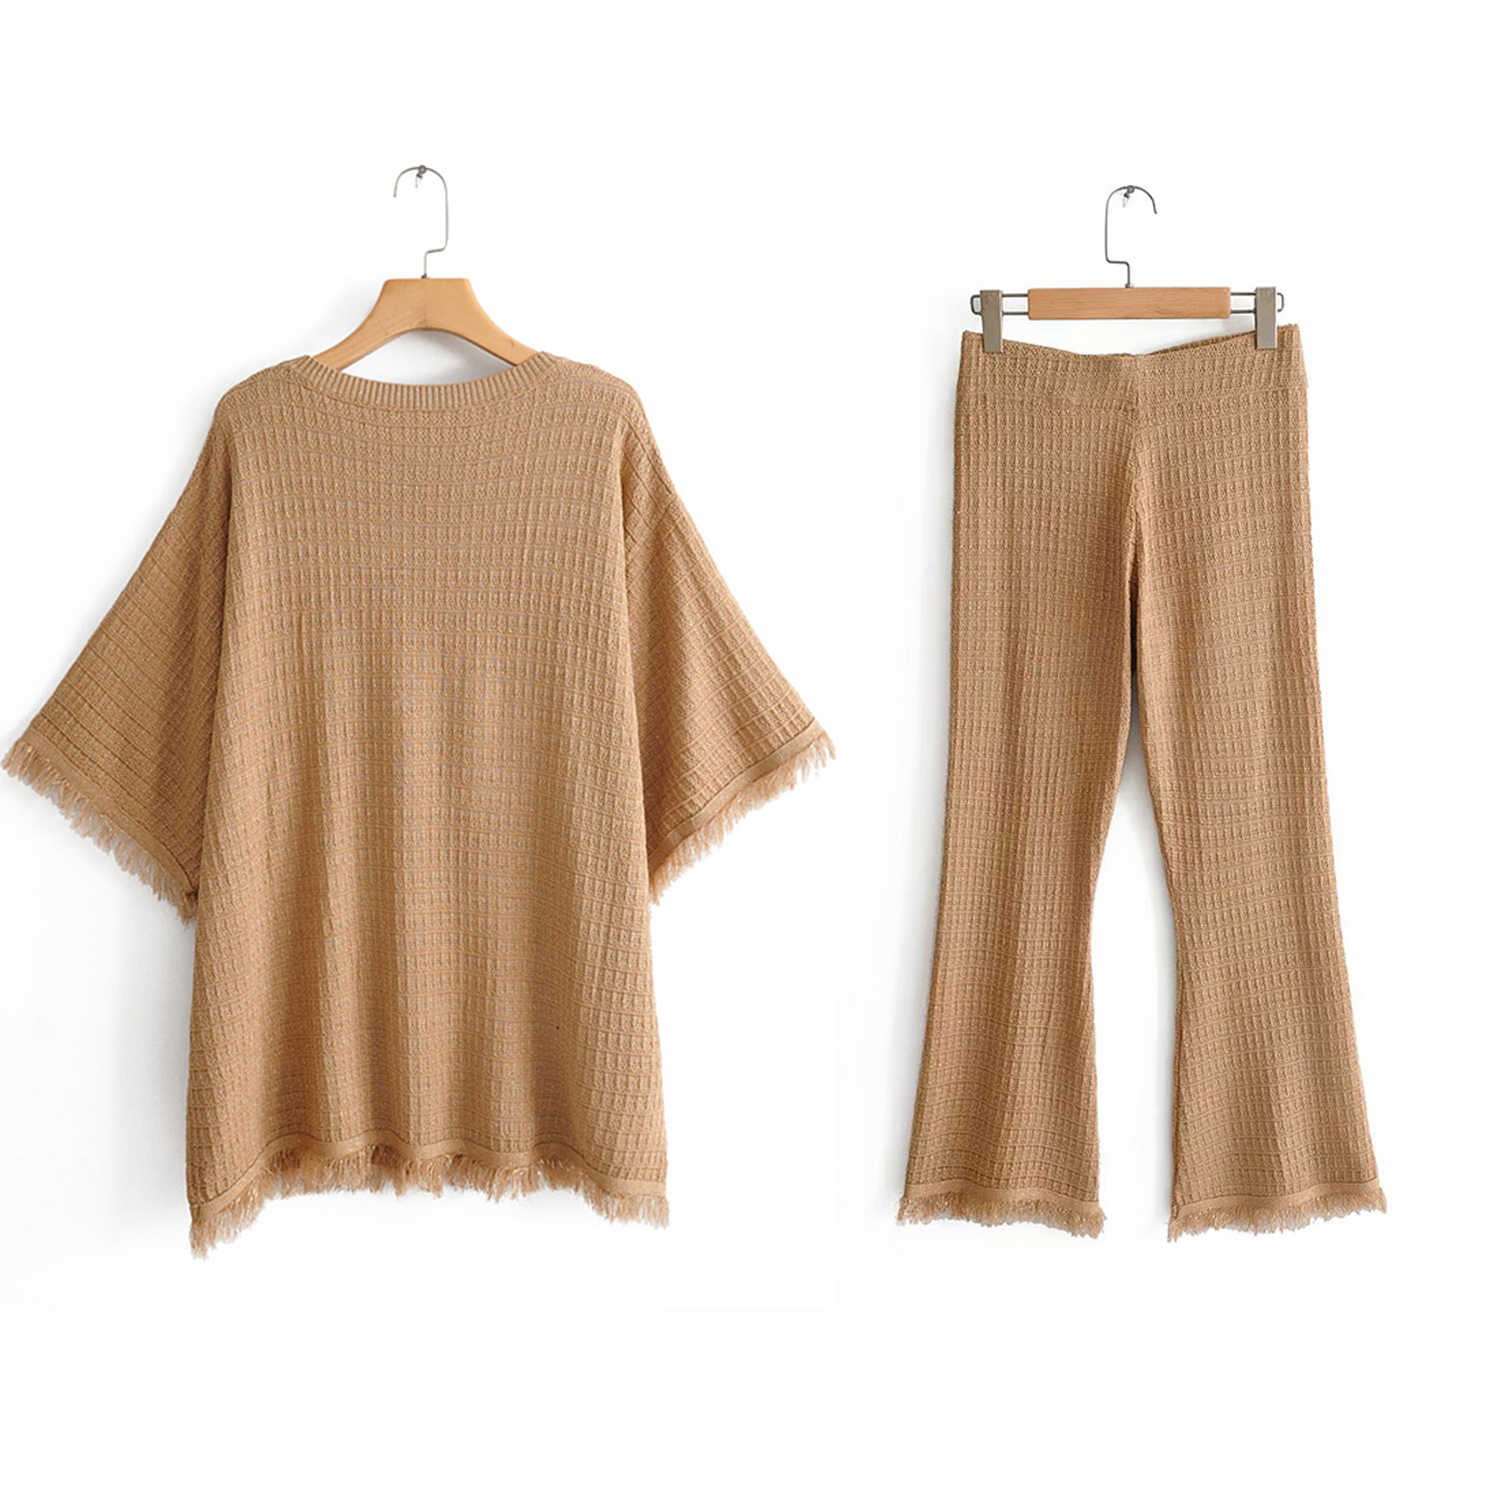 Autumn camel color knitted sweater women tops Za Style O neck half sleeve tassels rough edge Stylish Casual loose tops femme